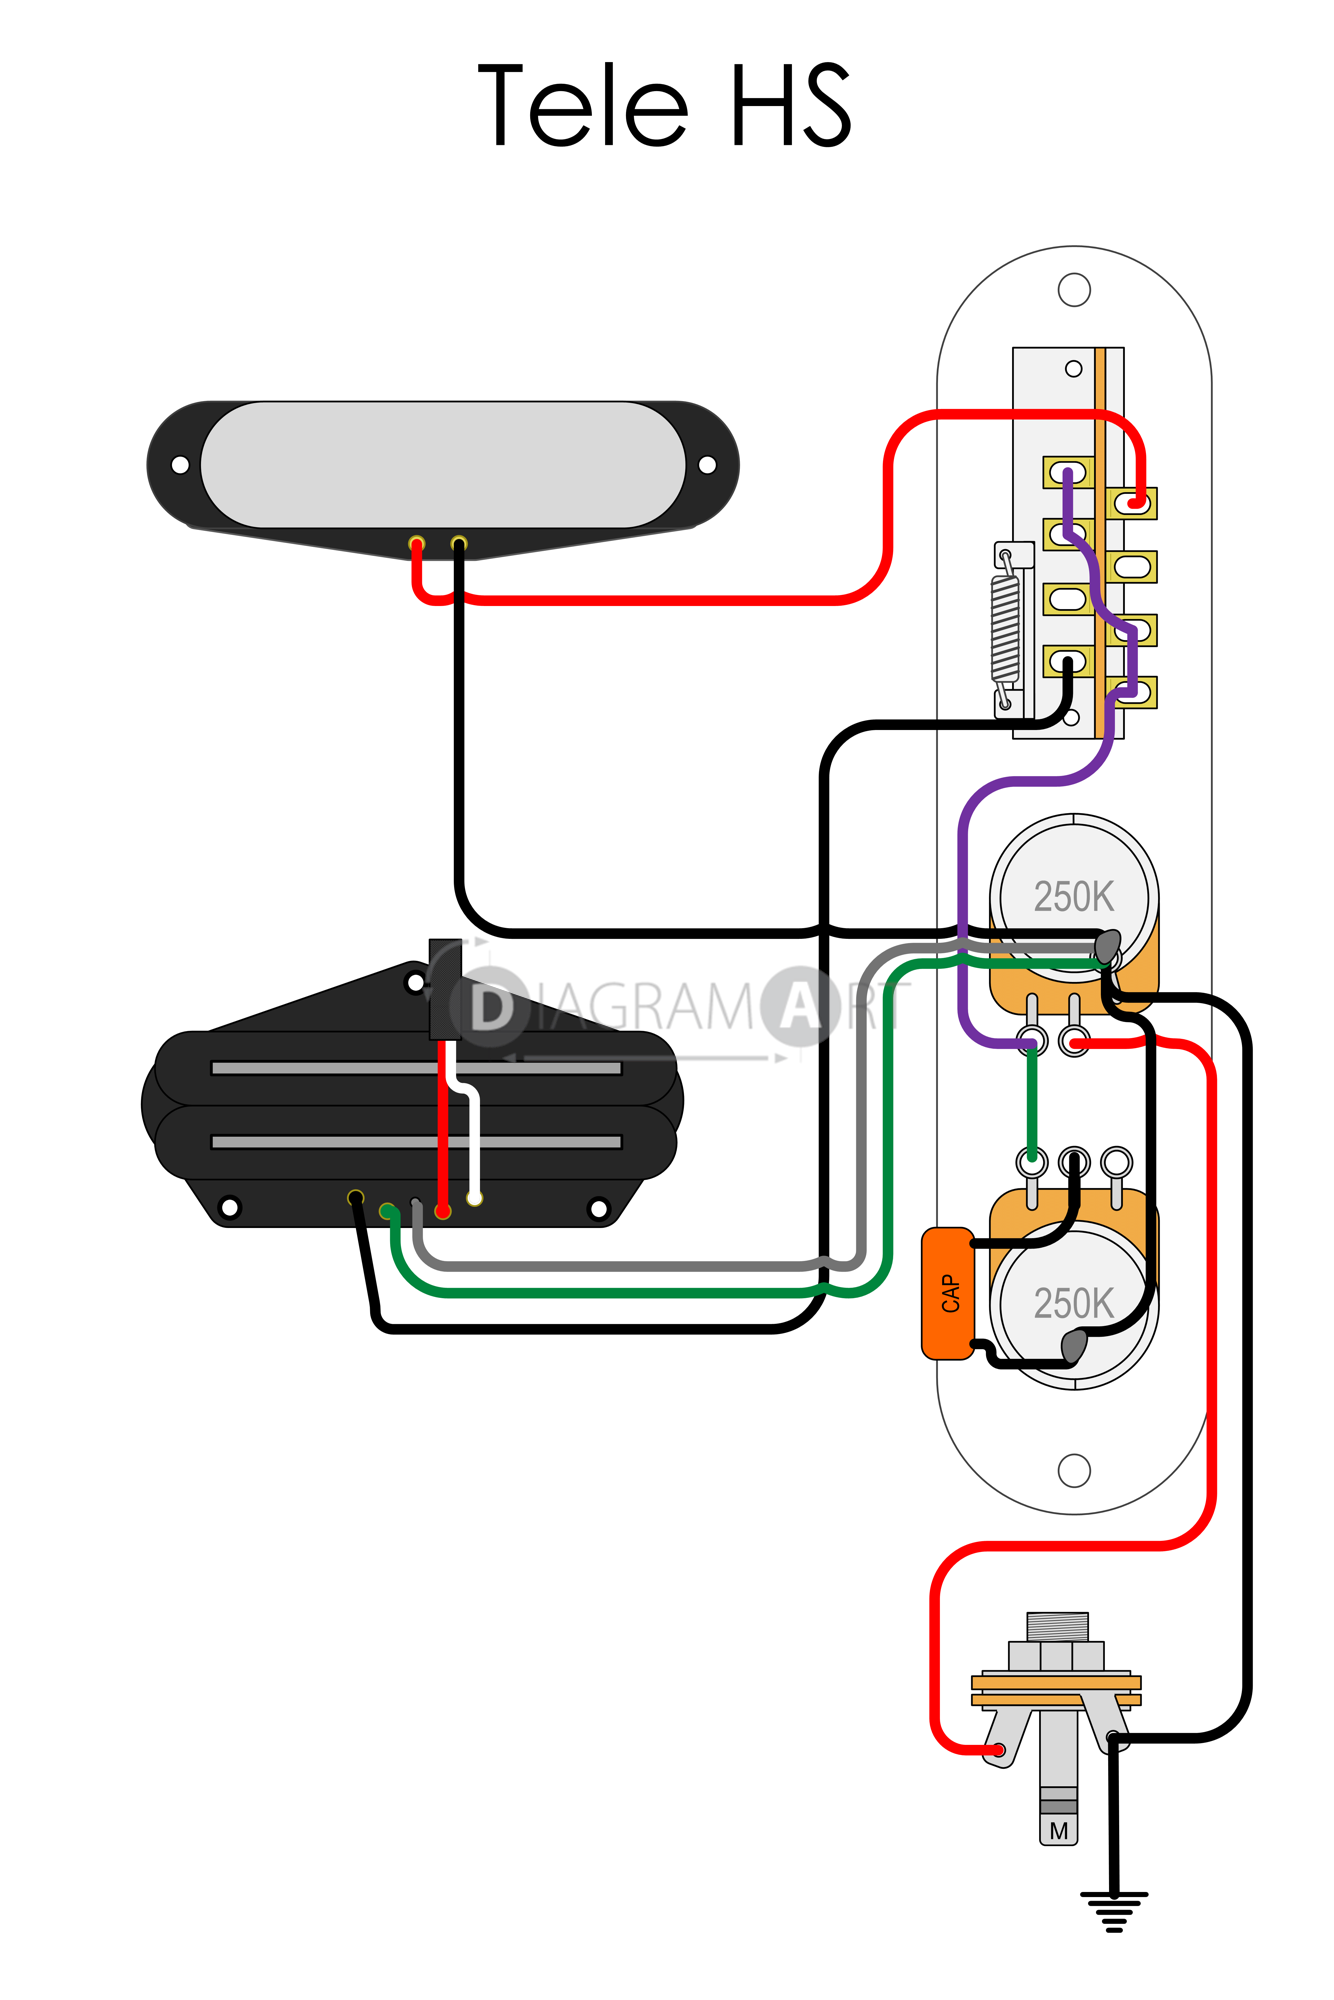 Telecaster Hs Wiring Diagrams Simple Diagram Basic Electric Guitar For 3 Tele